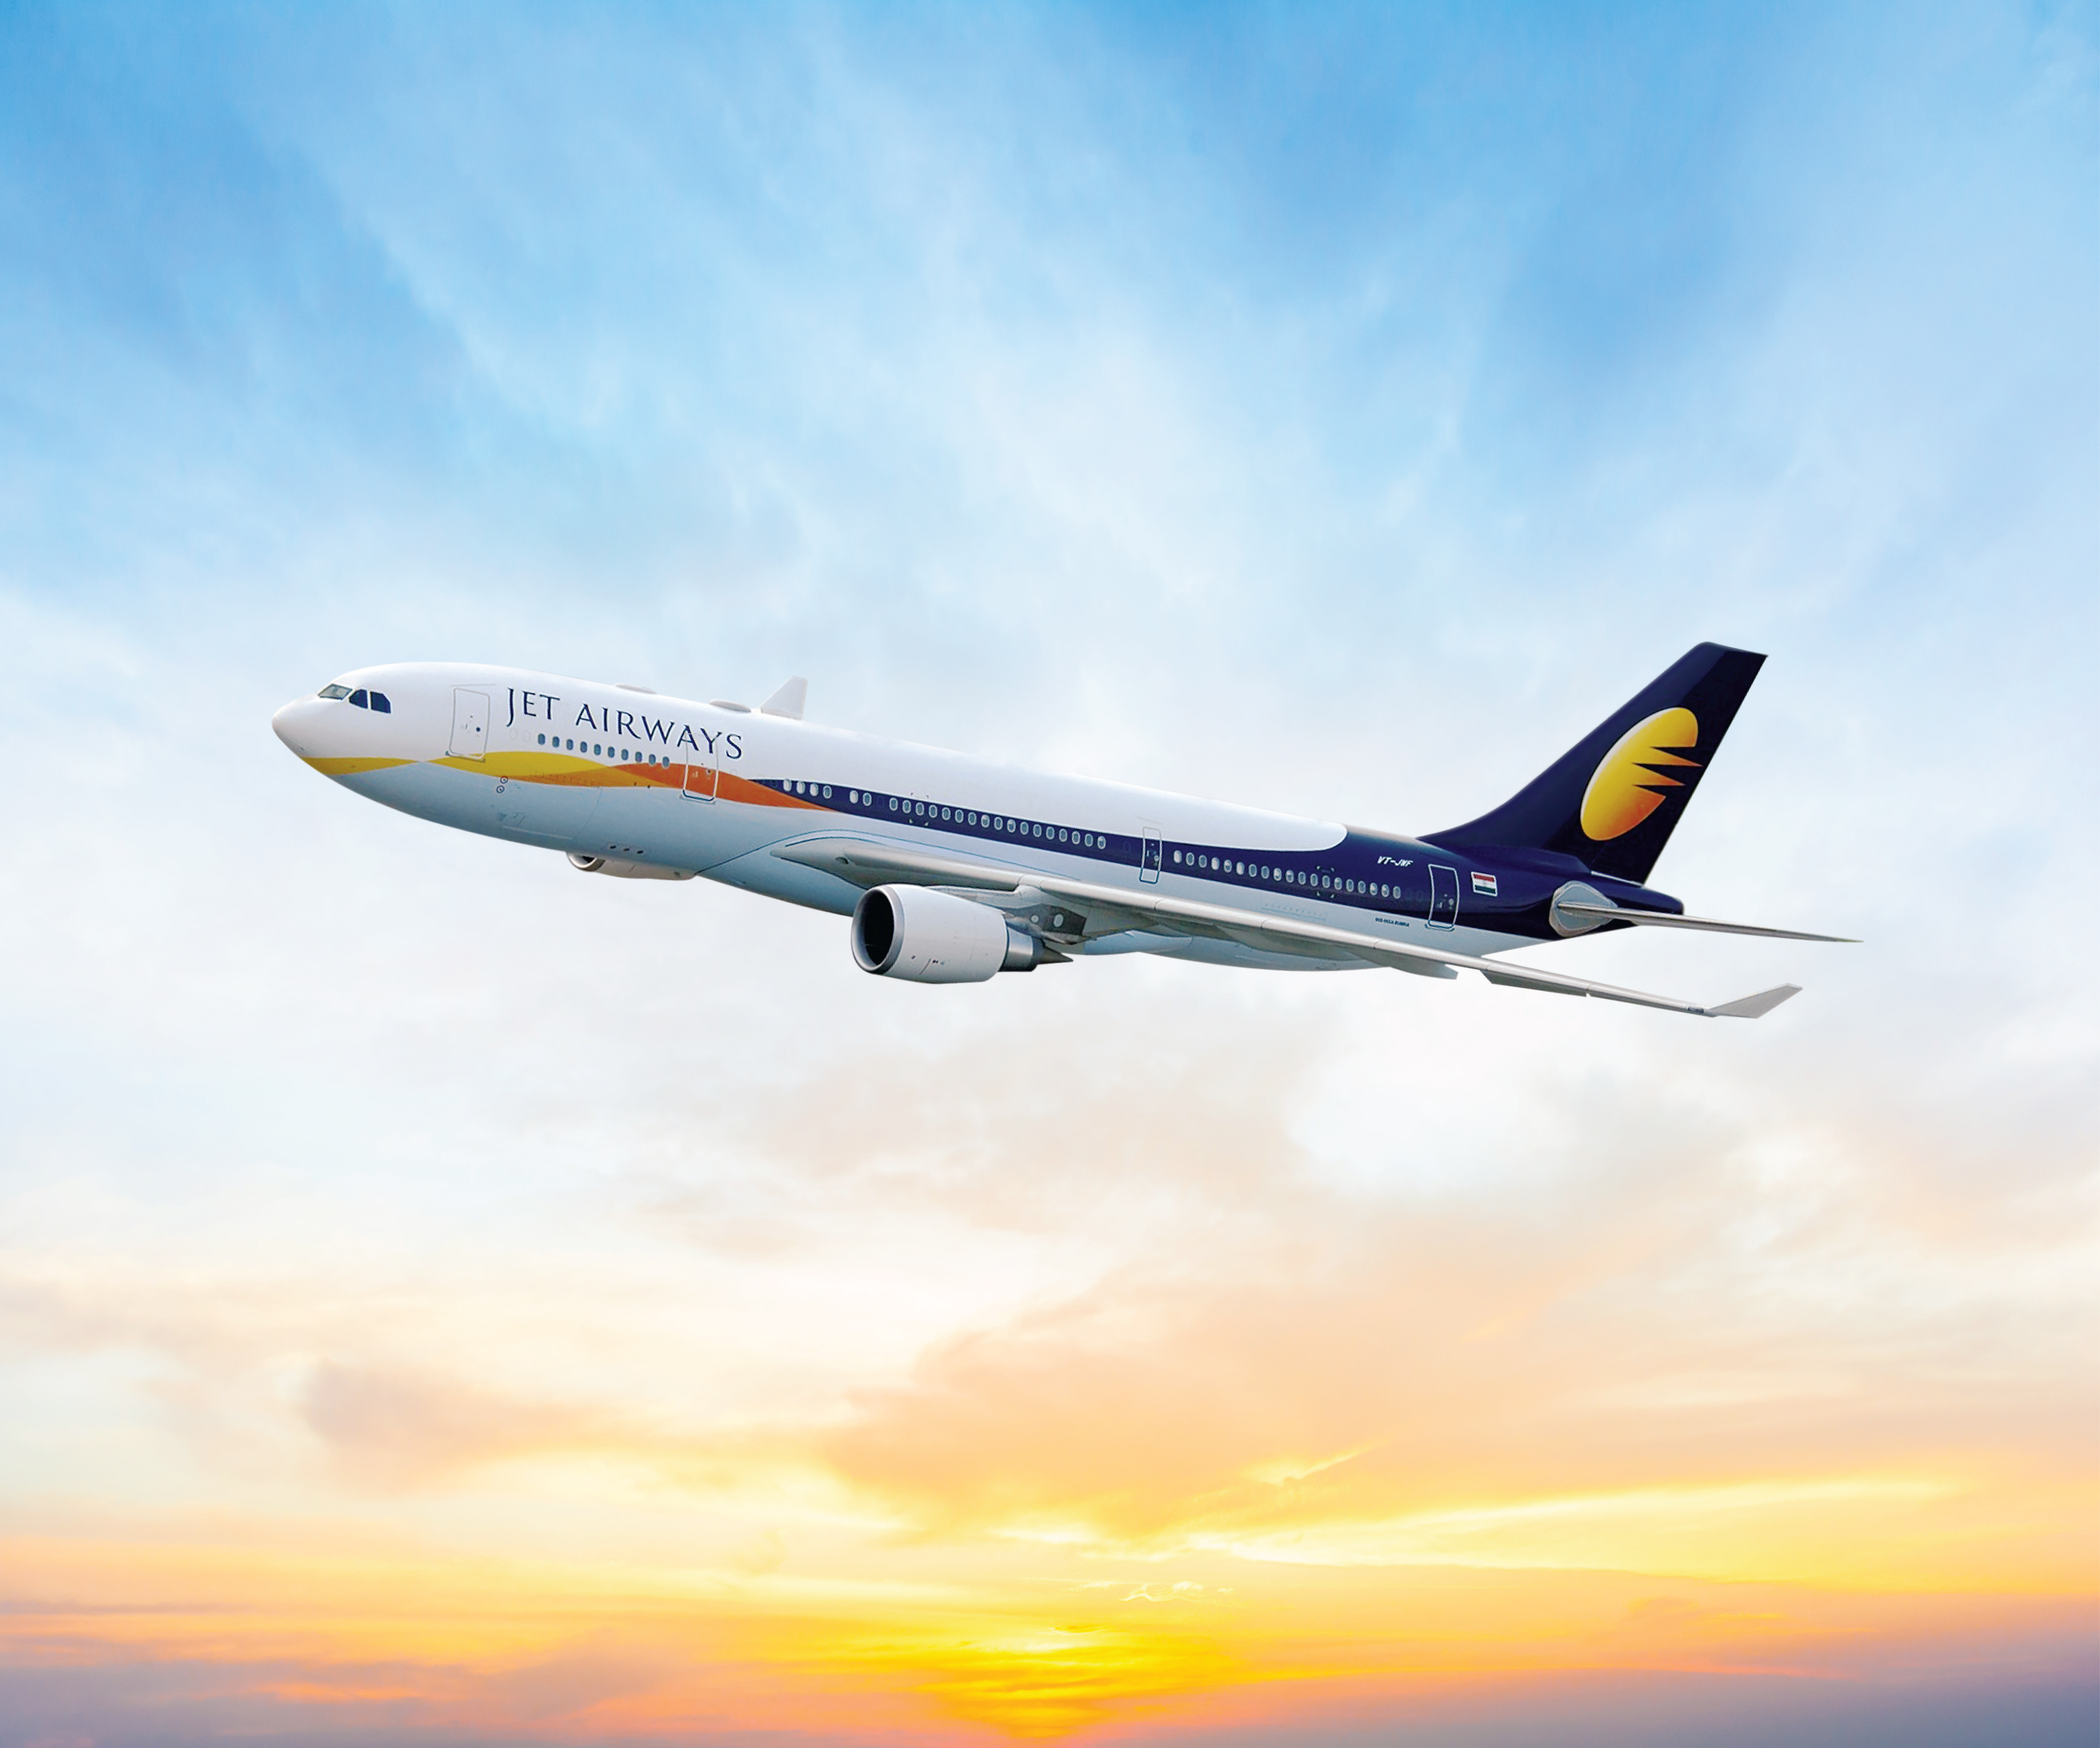 Jet Airways was chosen as the best airline by customer reviews.